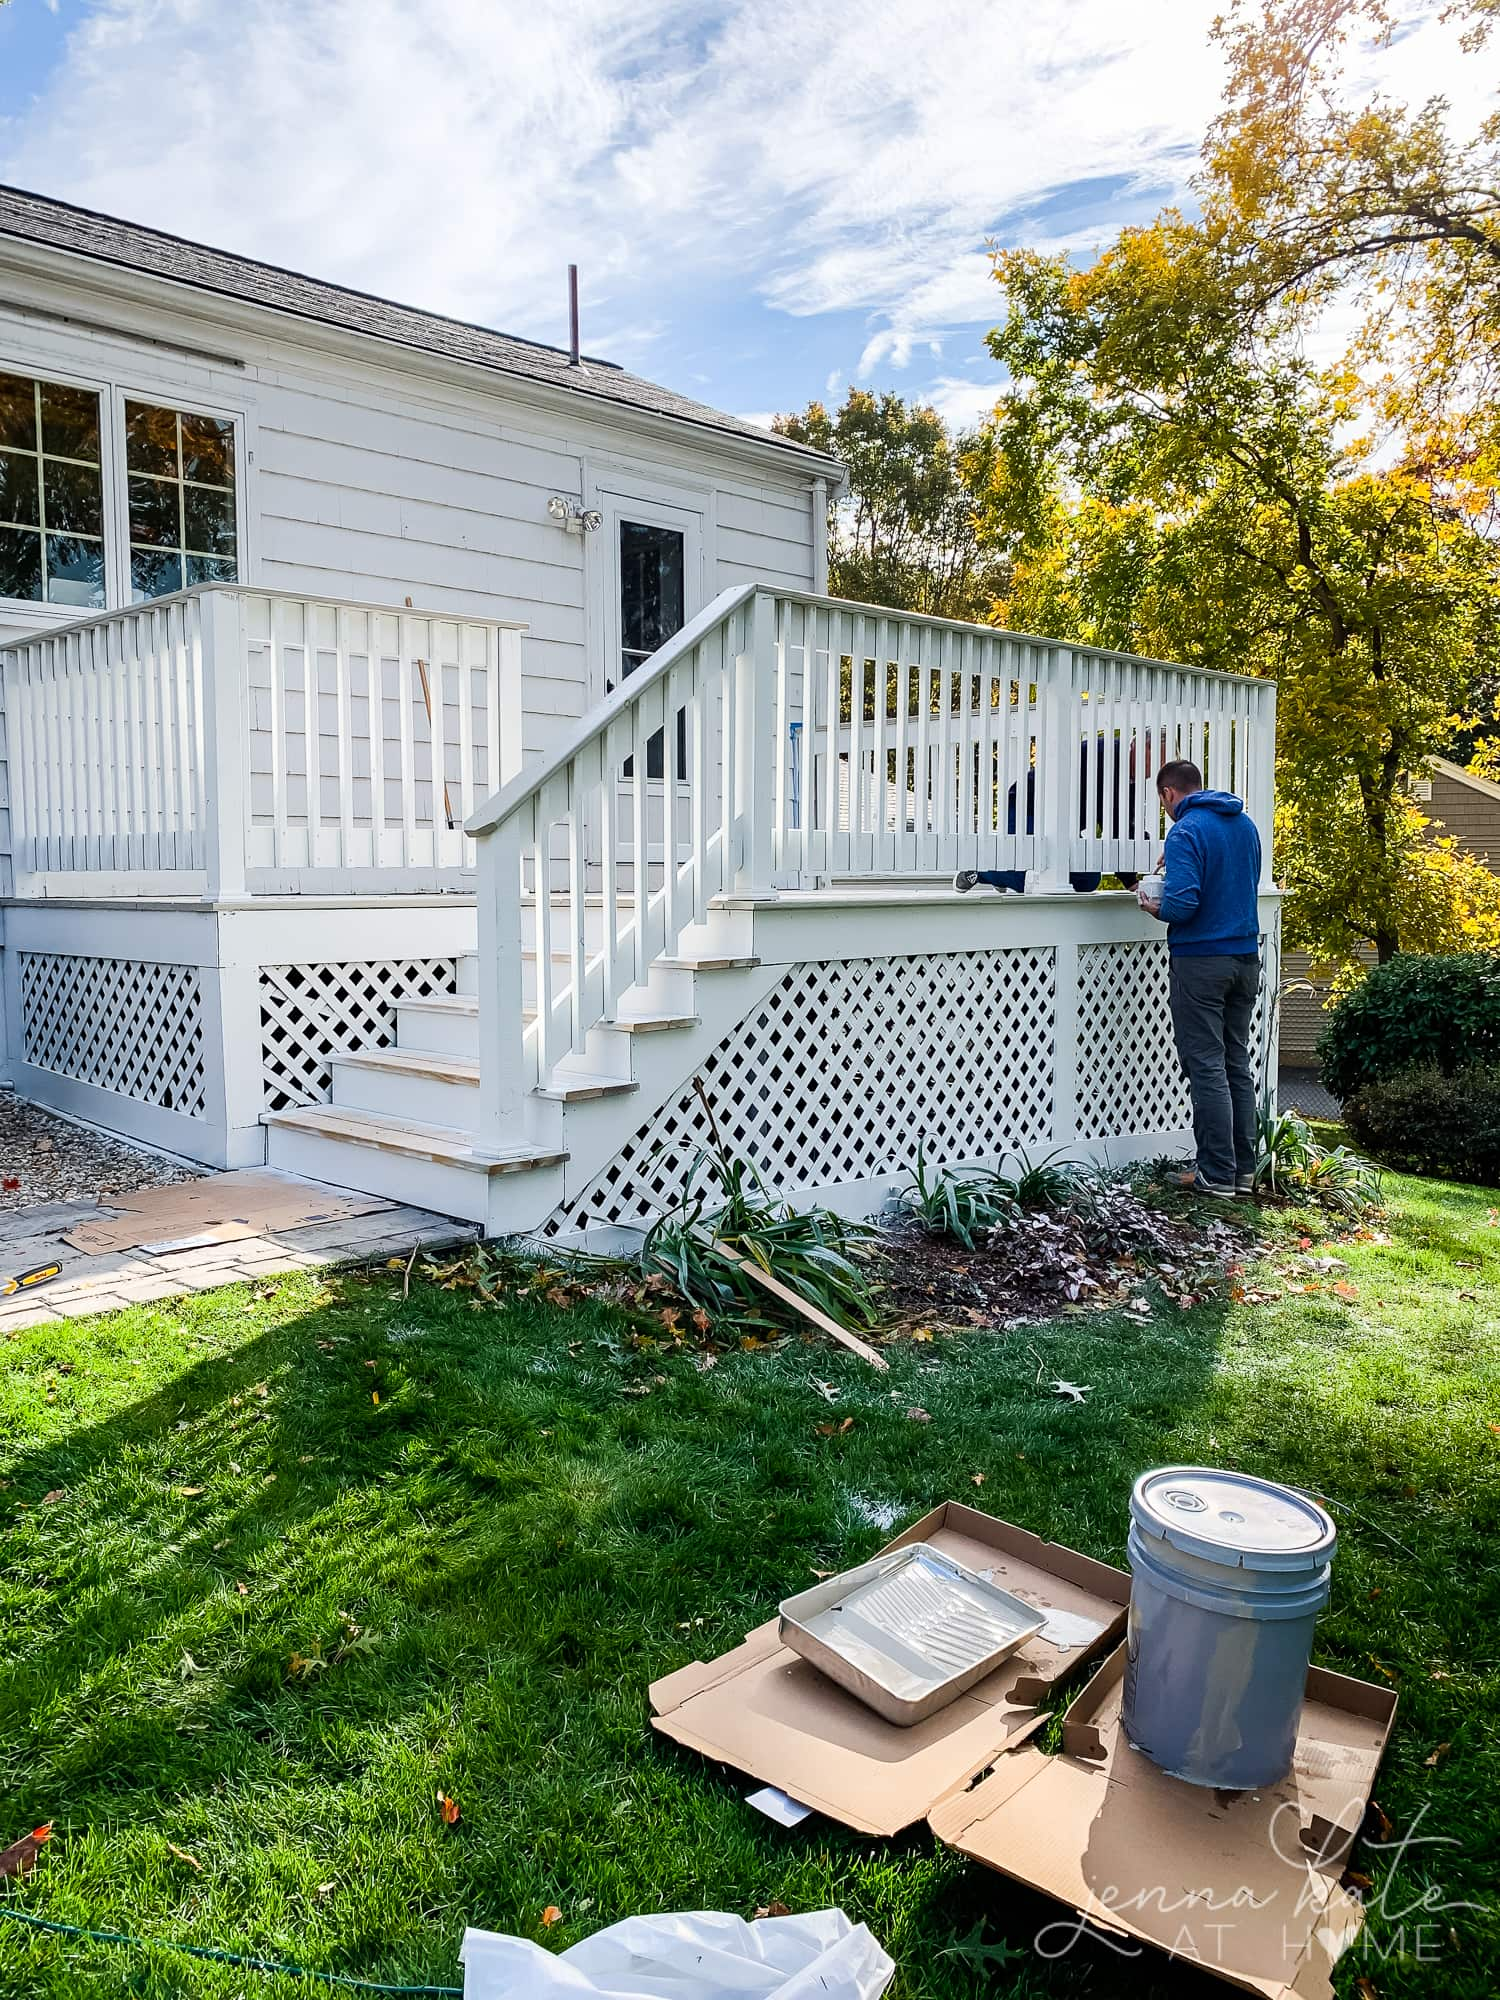 Painting the lattice on the side of the deck white